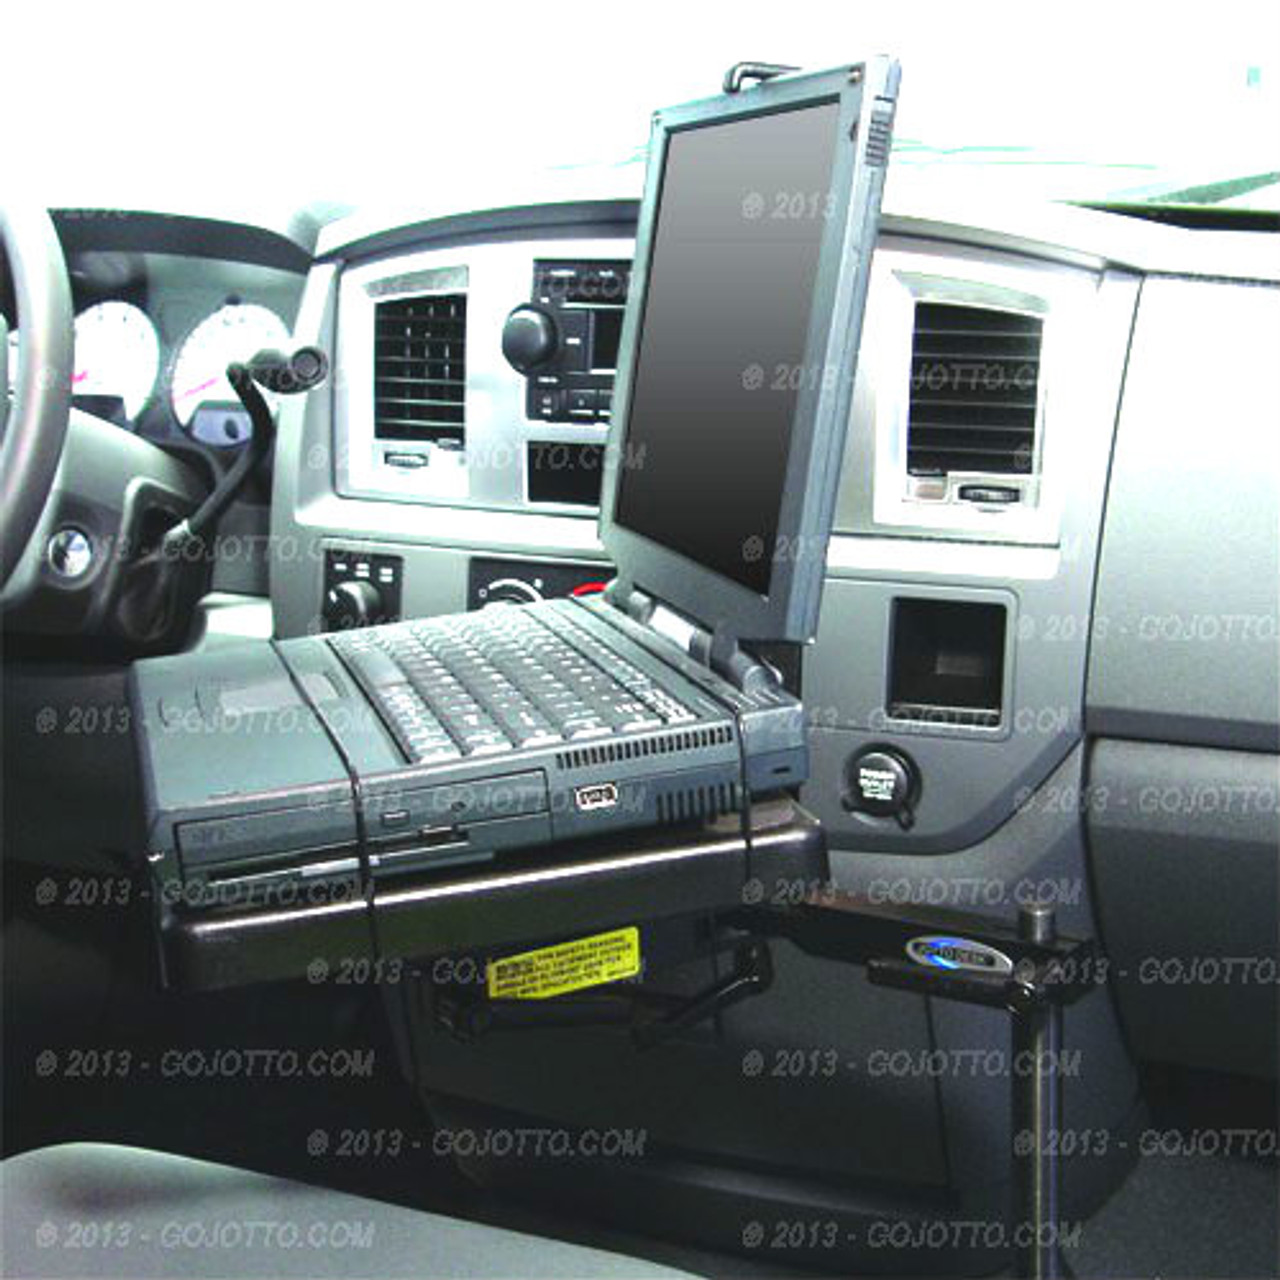 Ram 1500 Laptop Mount Computer Stand by Jotto Desk 2002-2019